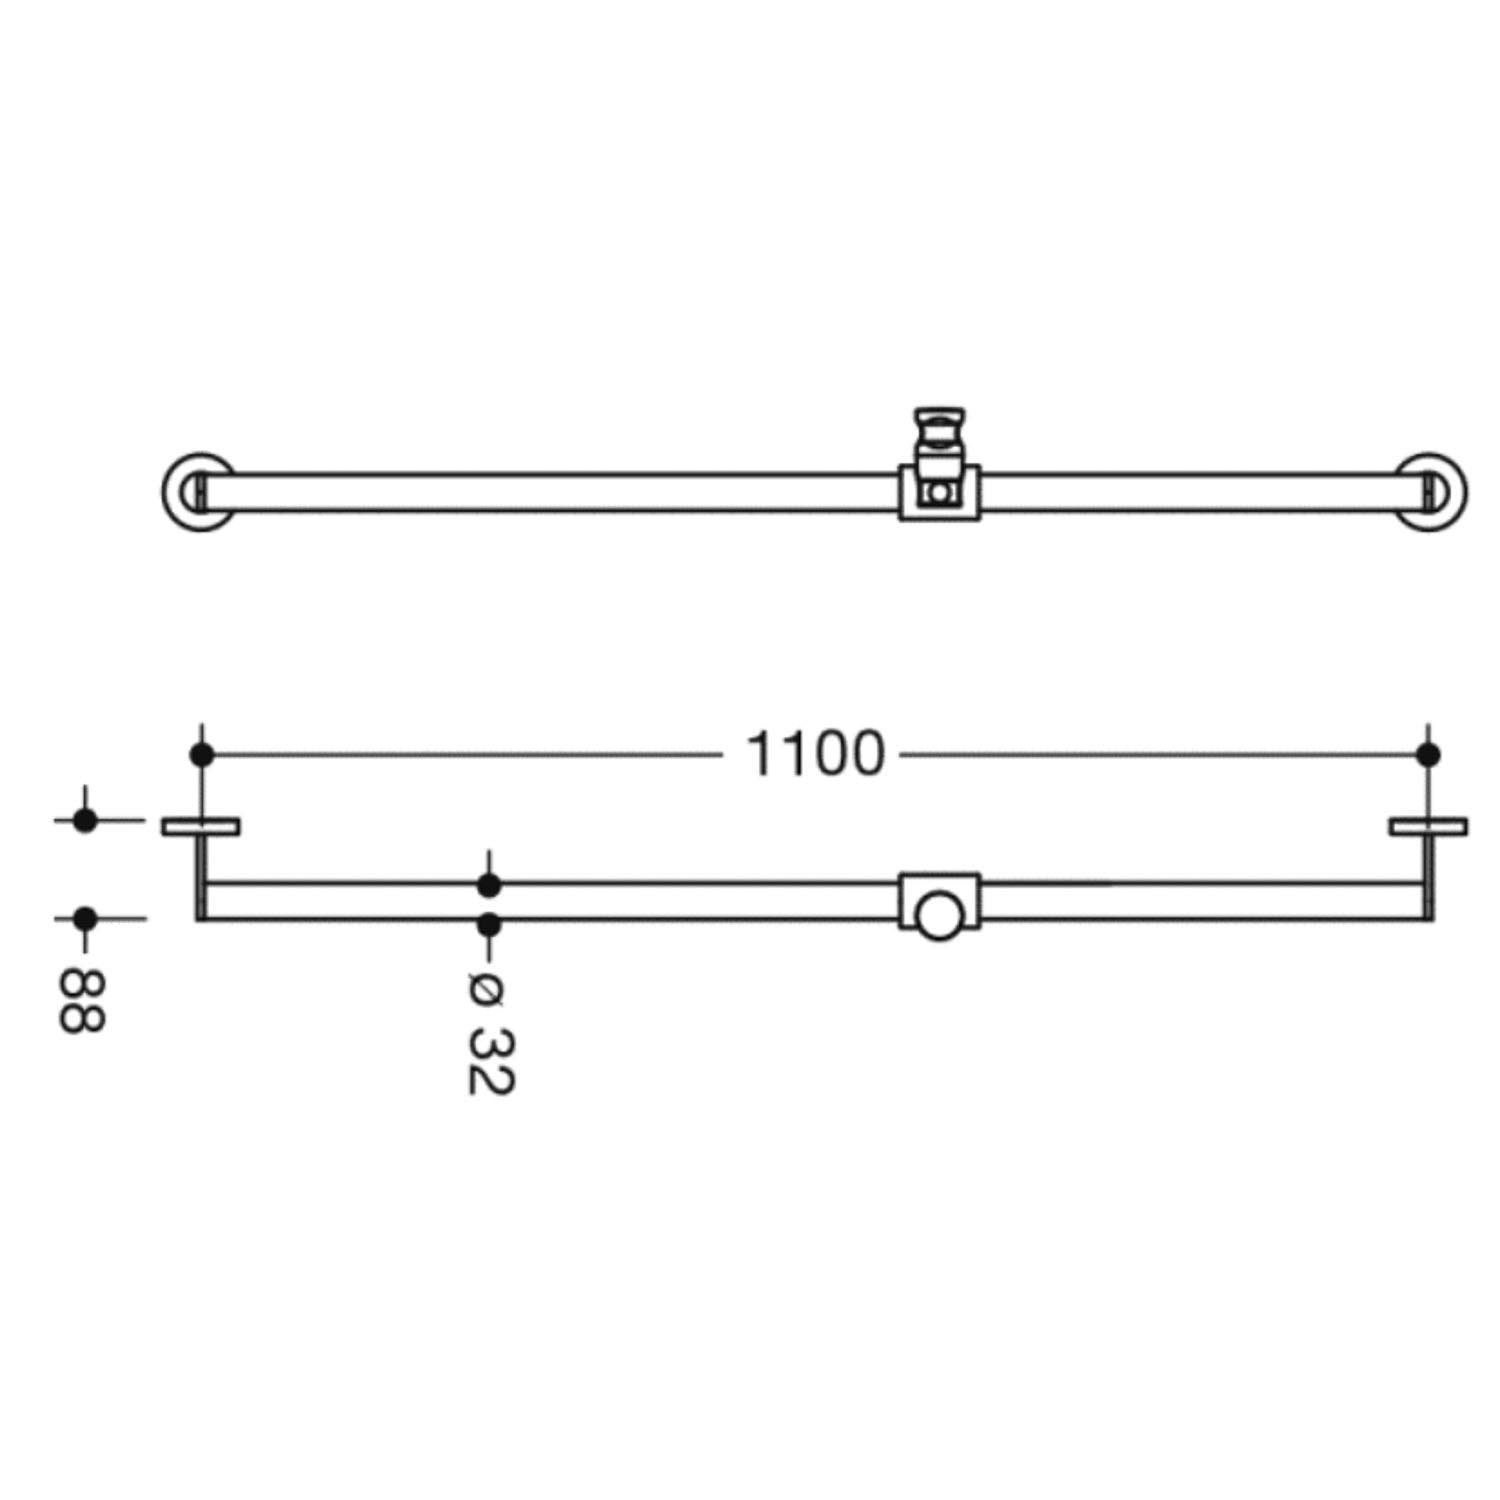 1100mm Freestyle Supportive Shower Rail with a chrome finish dimensional drawing